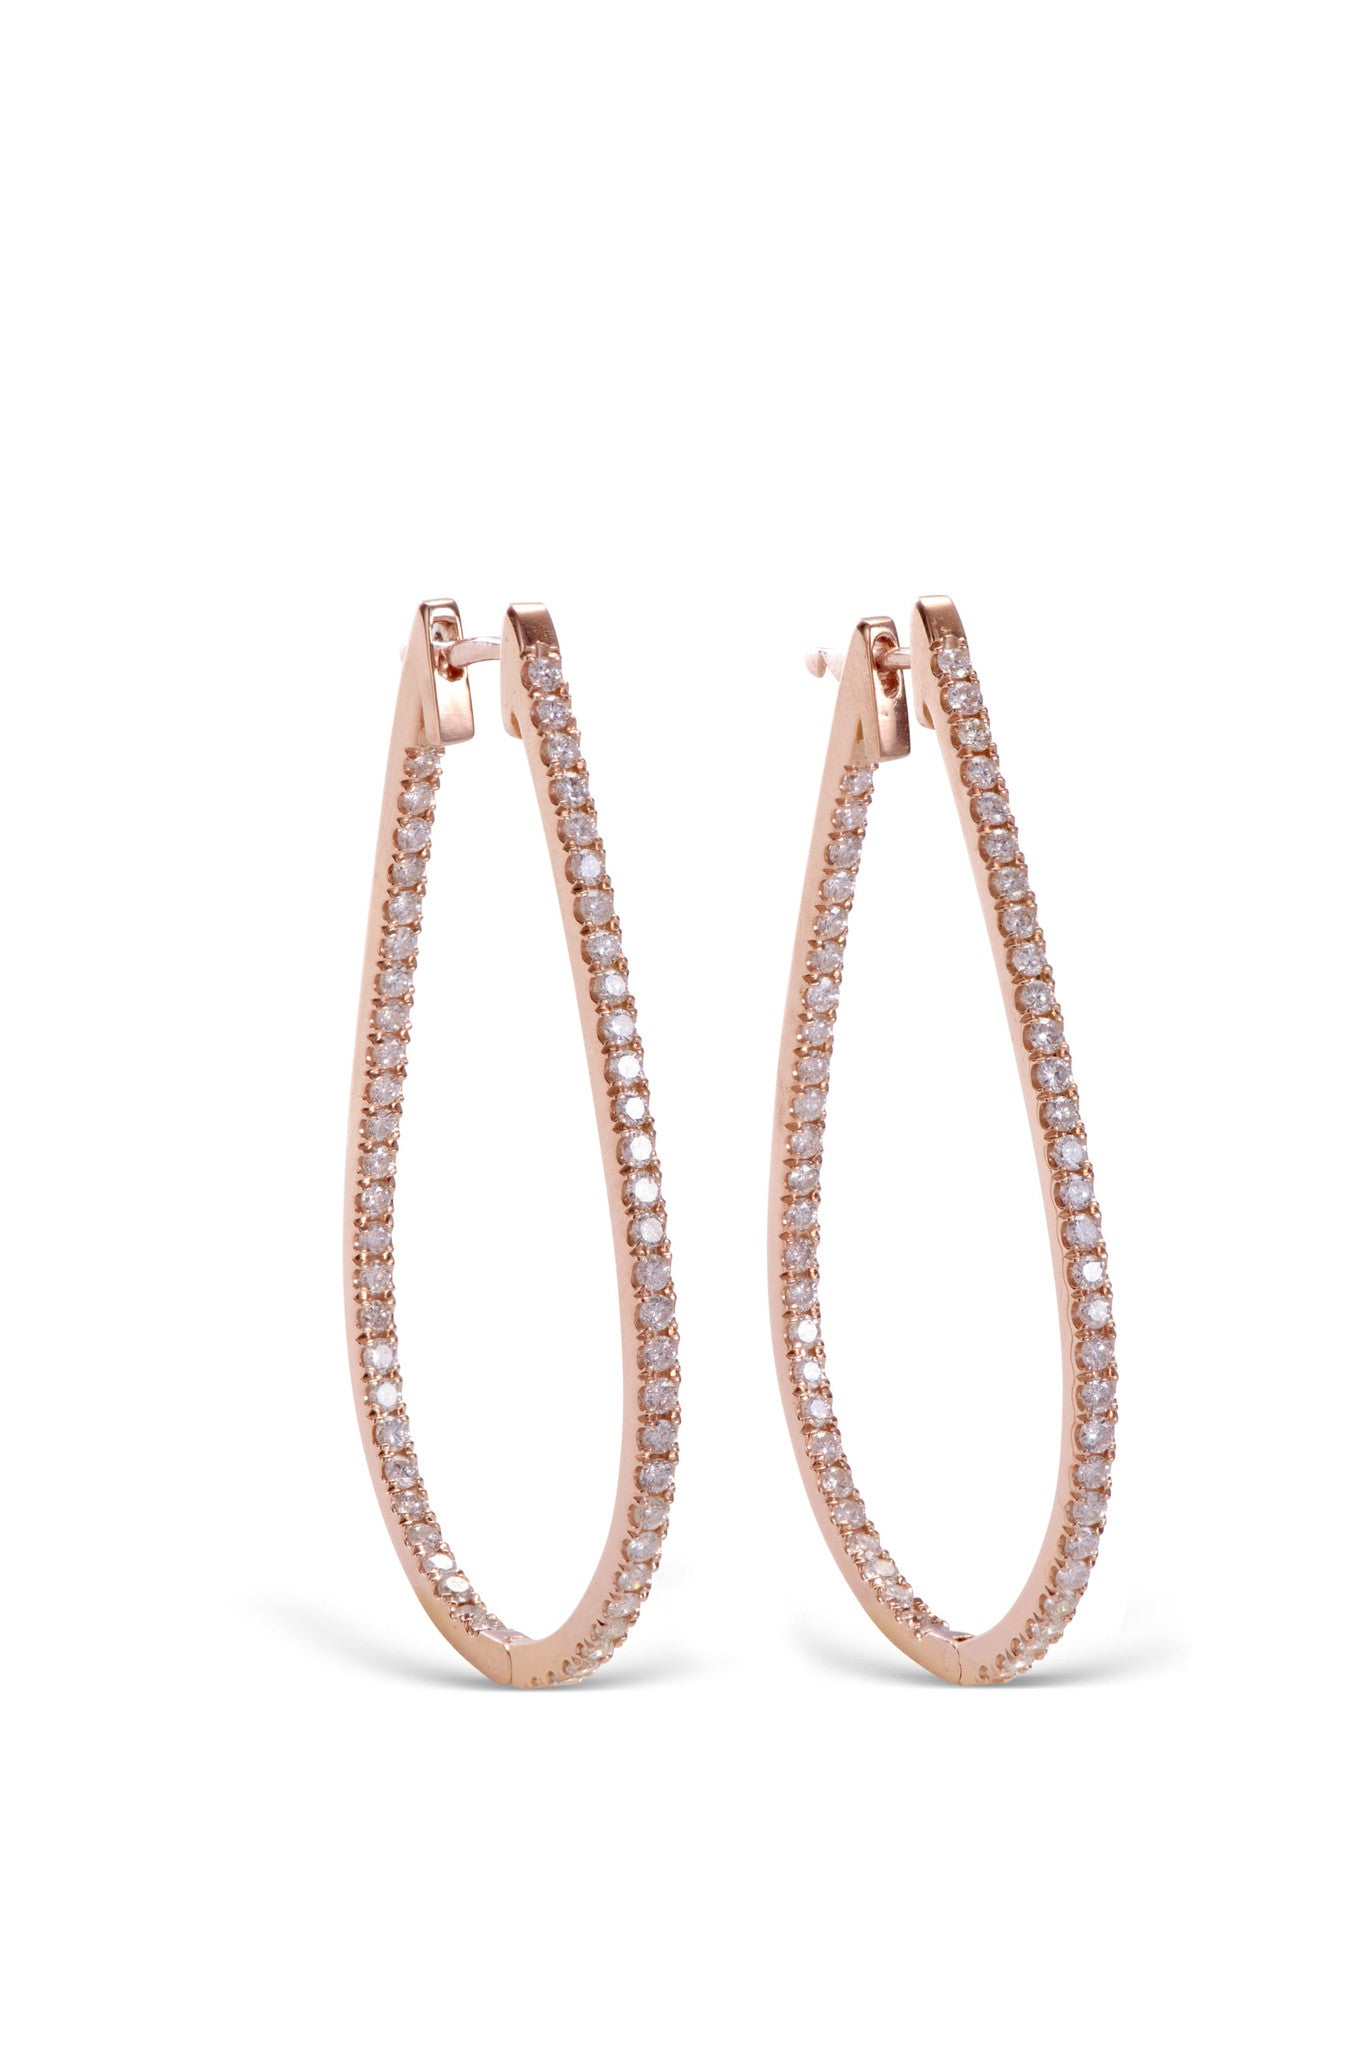 stardust 18KT rose gold hoop conflict free diamond earrings